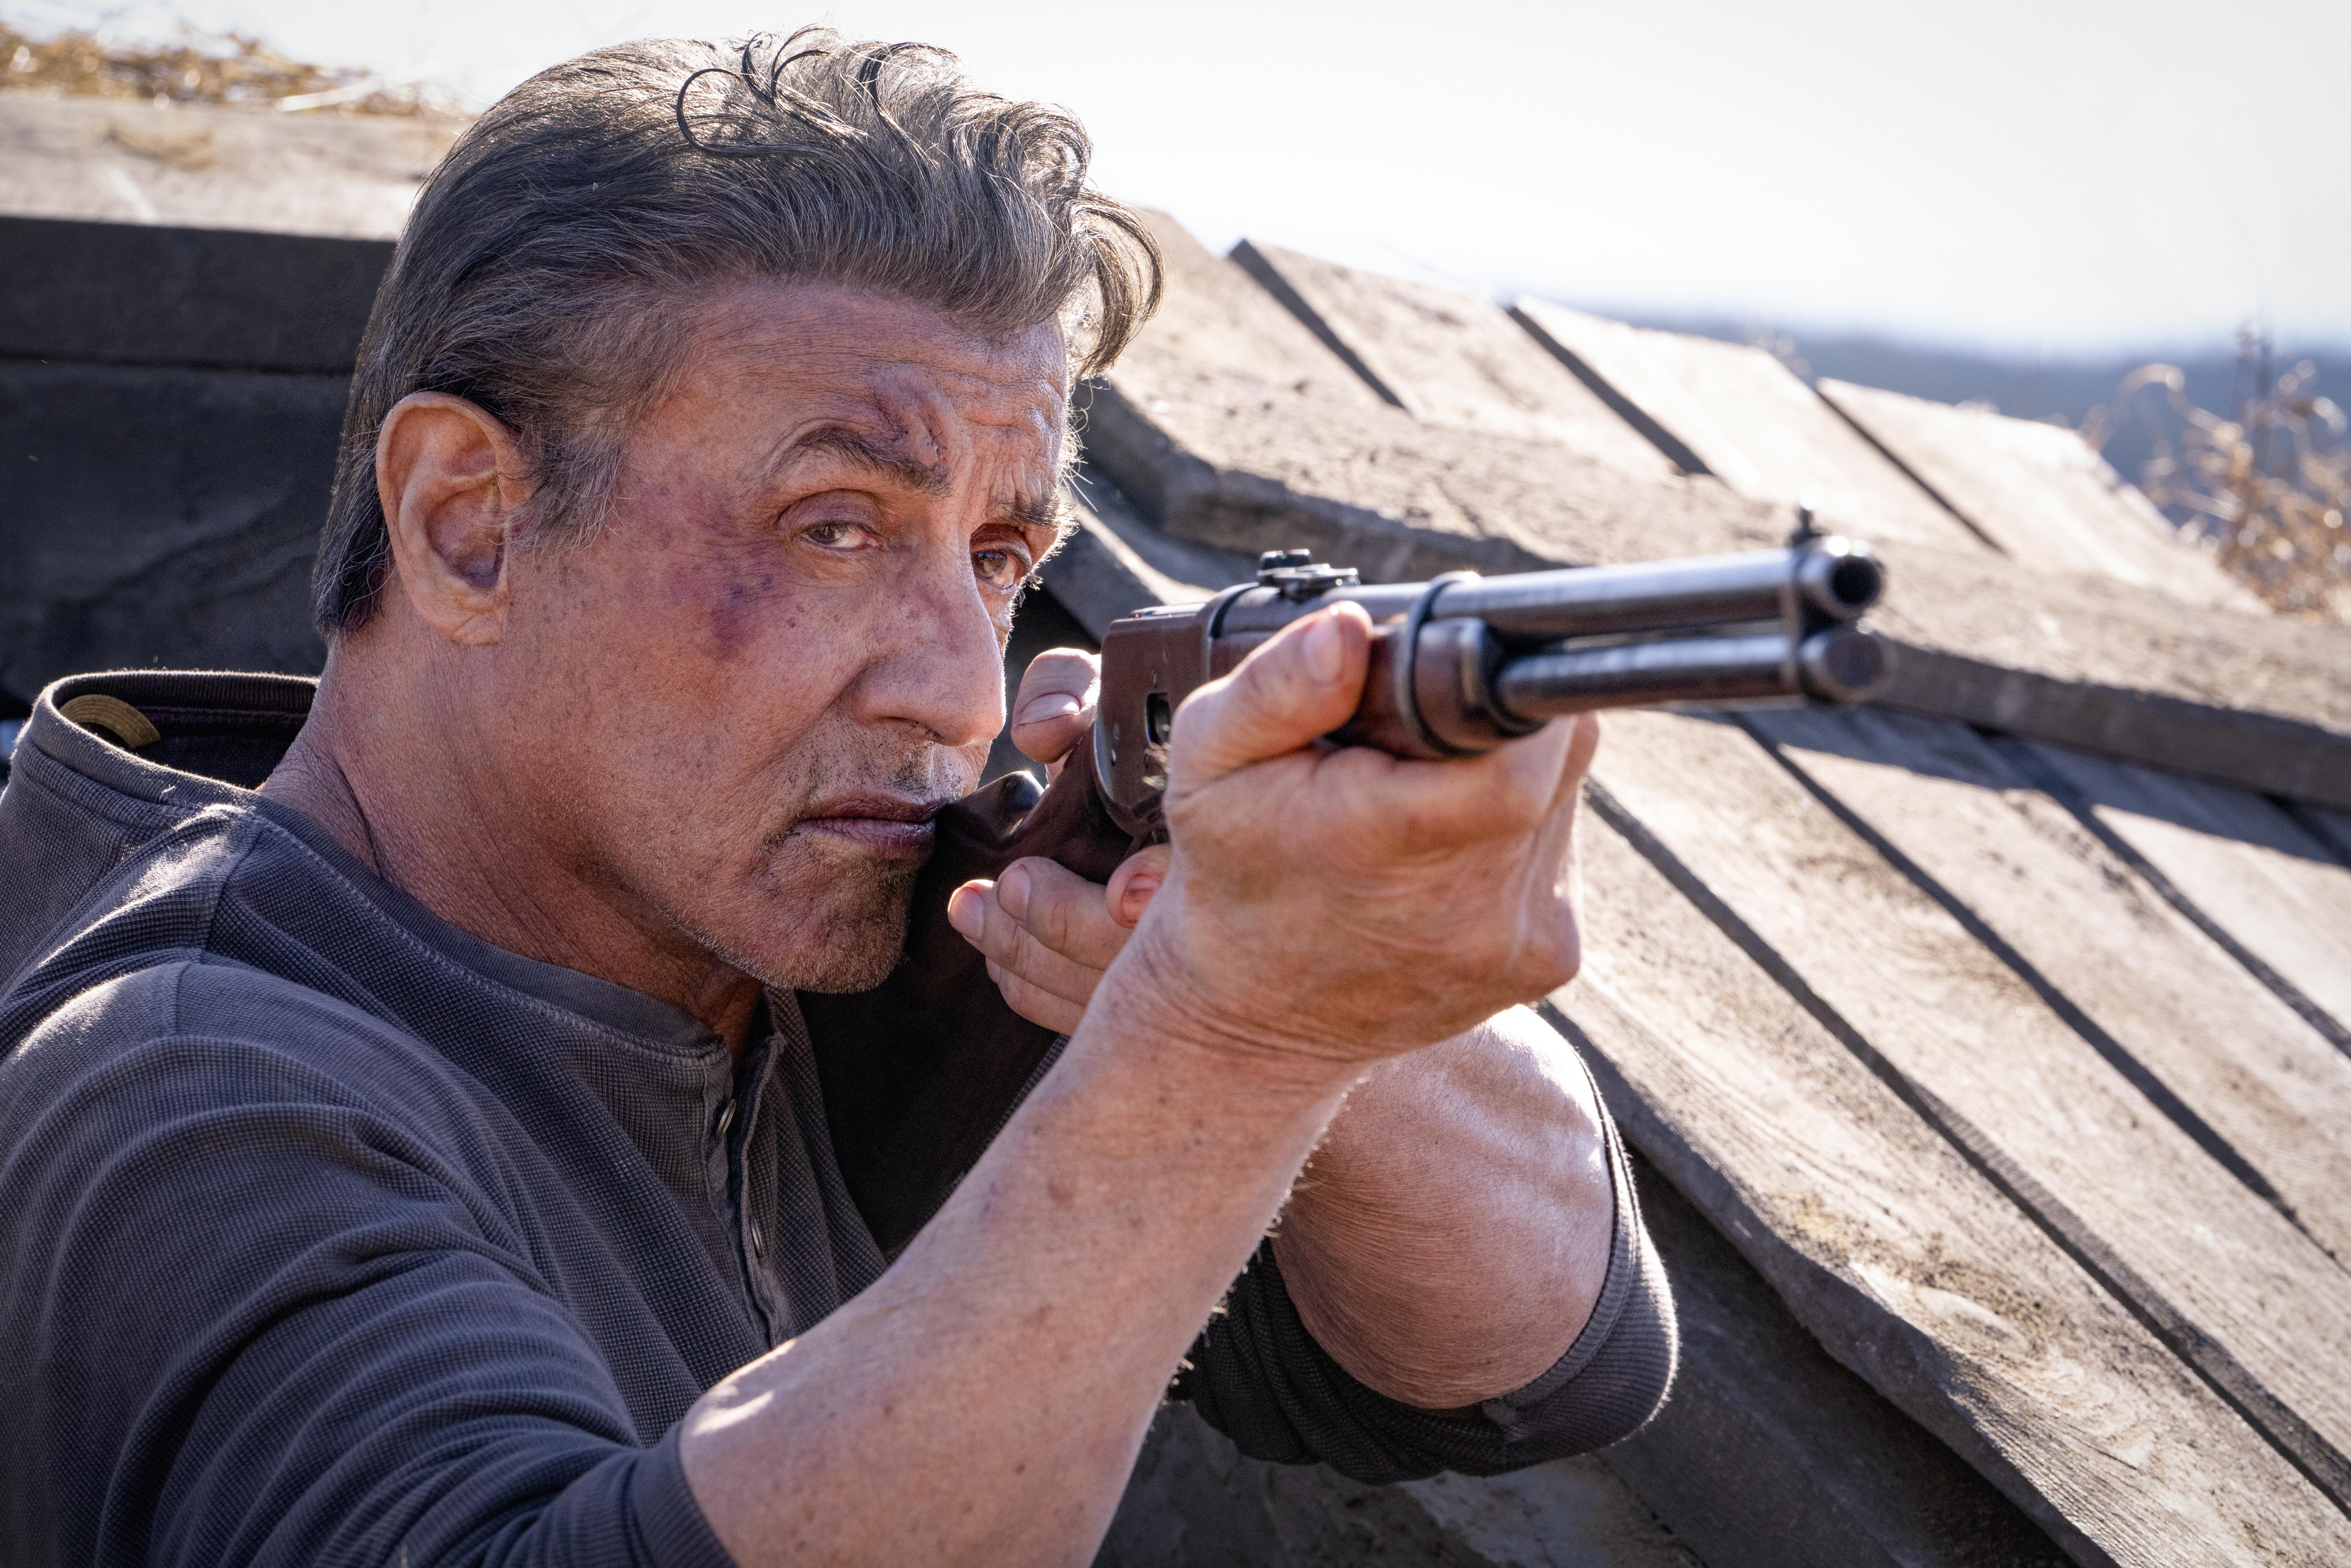 John Rambo has a new assignment in the Warzone.